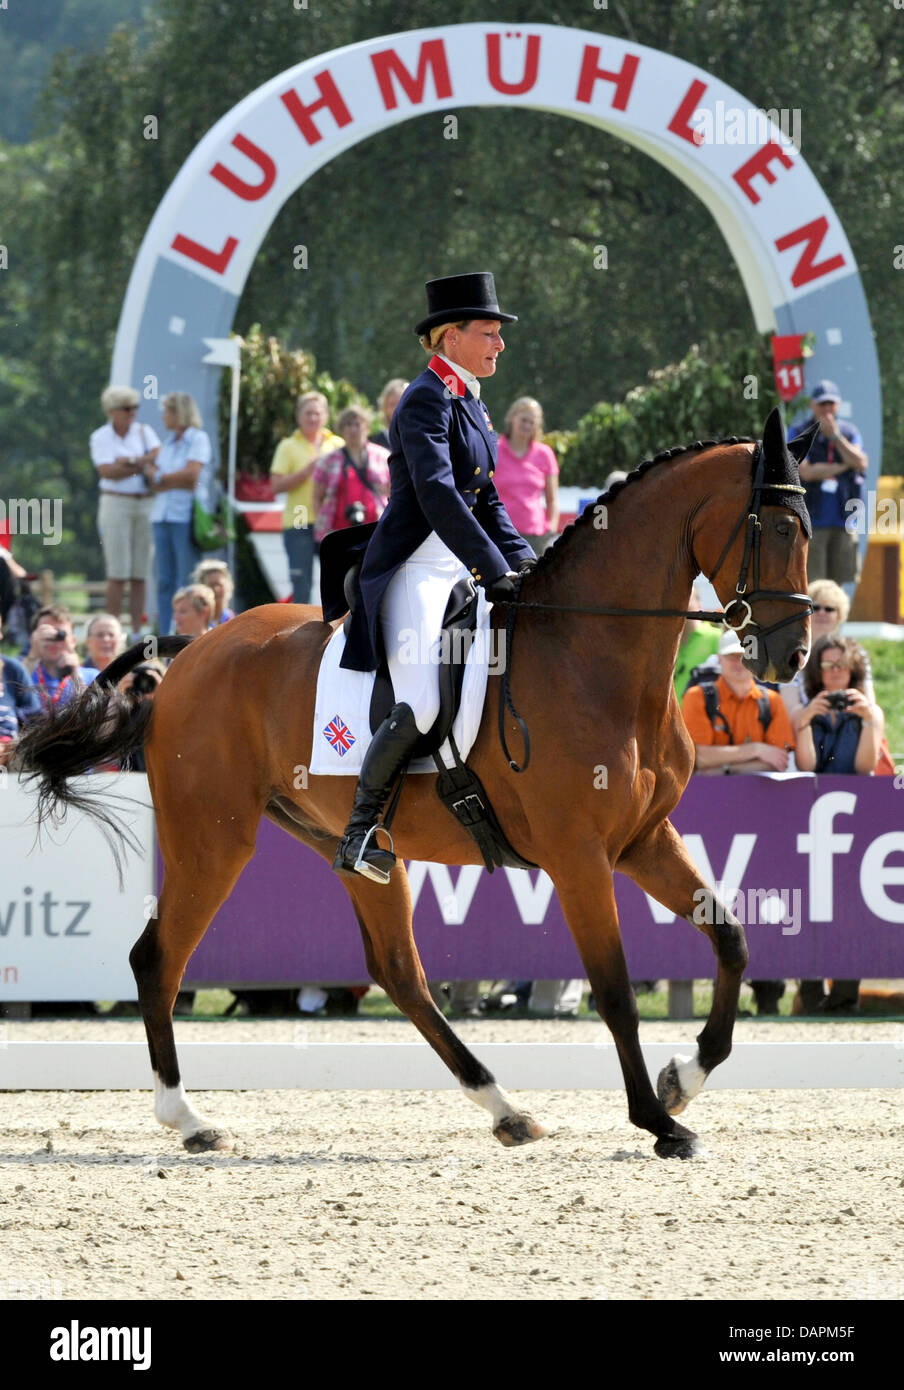 The British eventing equestrian Mary King in action on her horse Imperial Cavalier during the dressage tournament - Stock Image